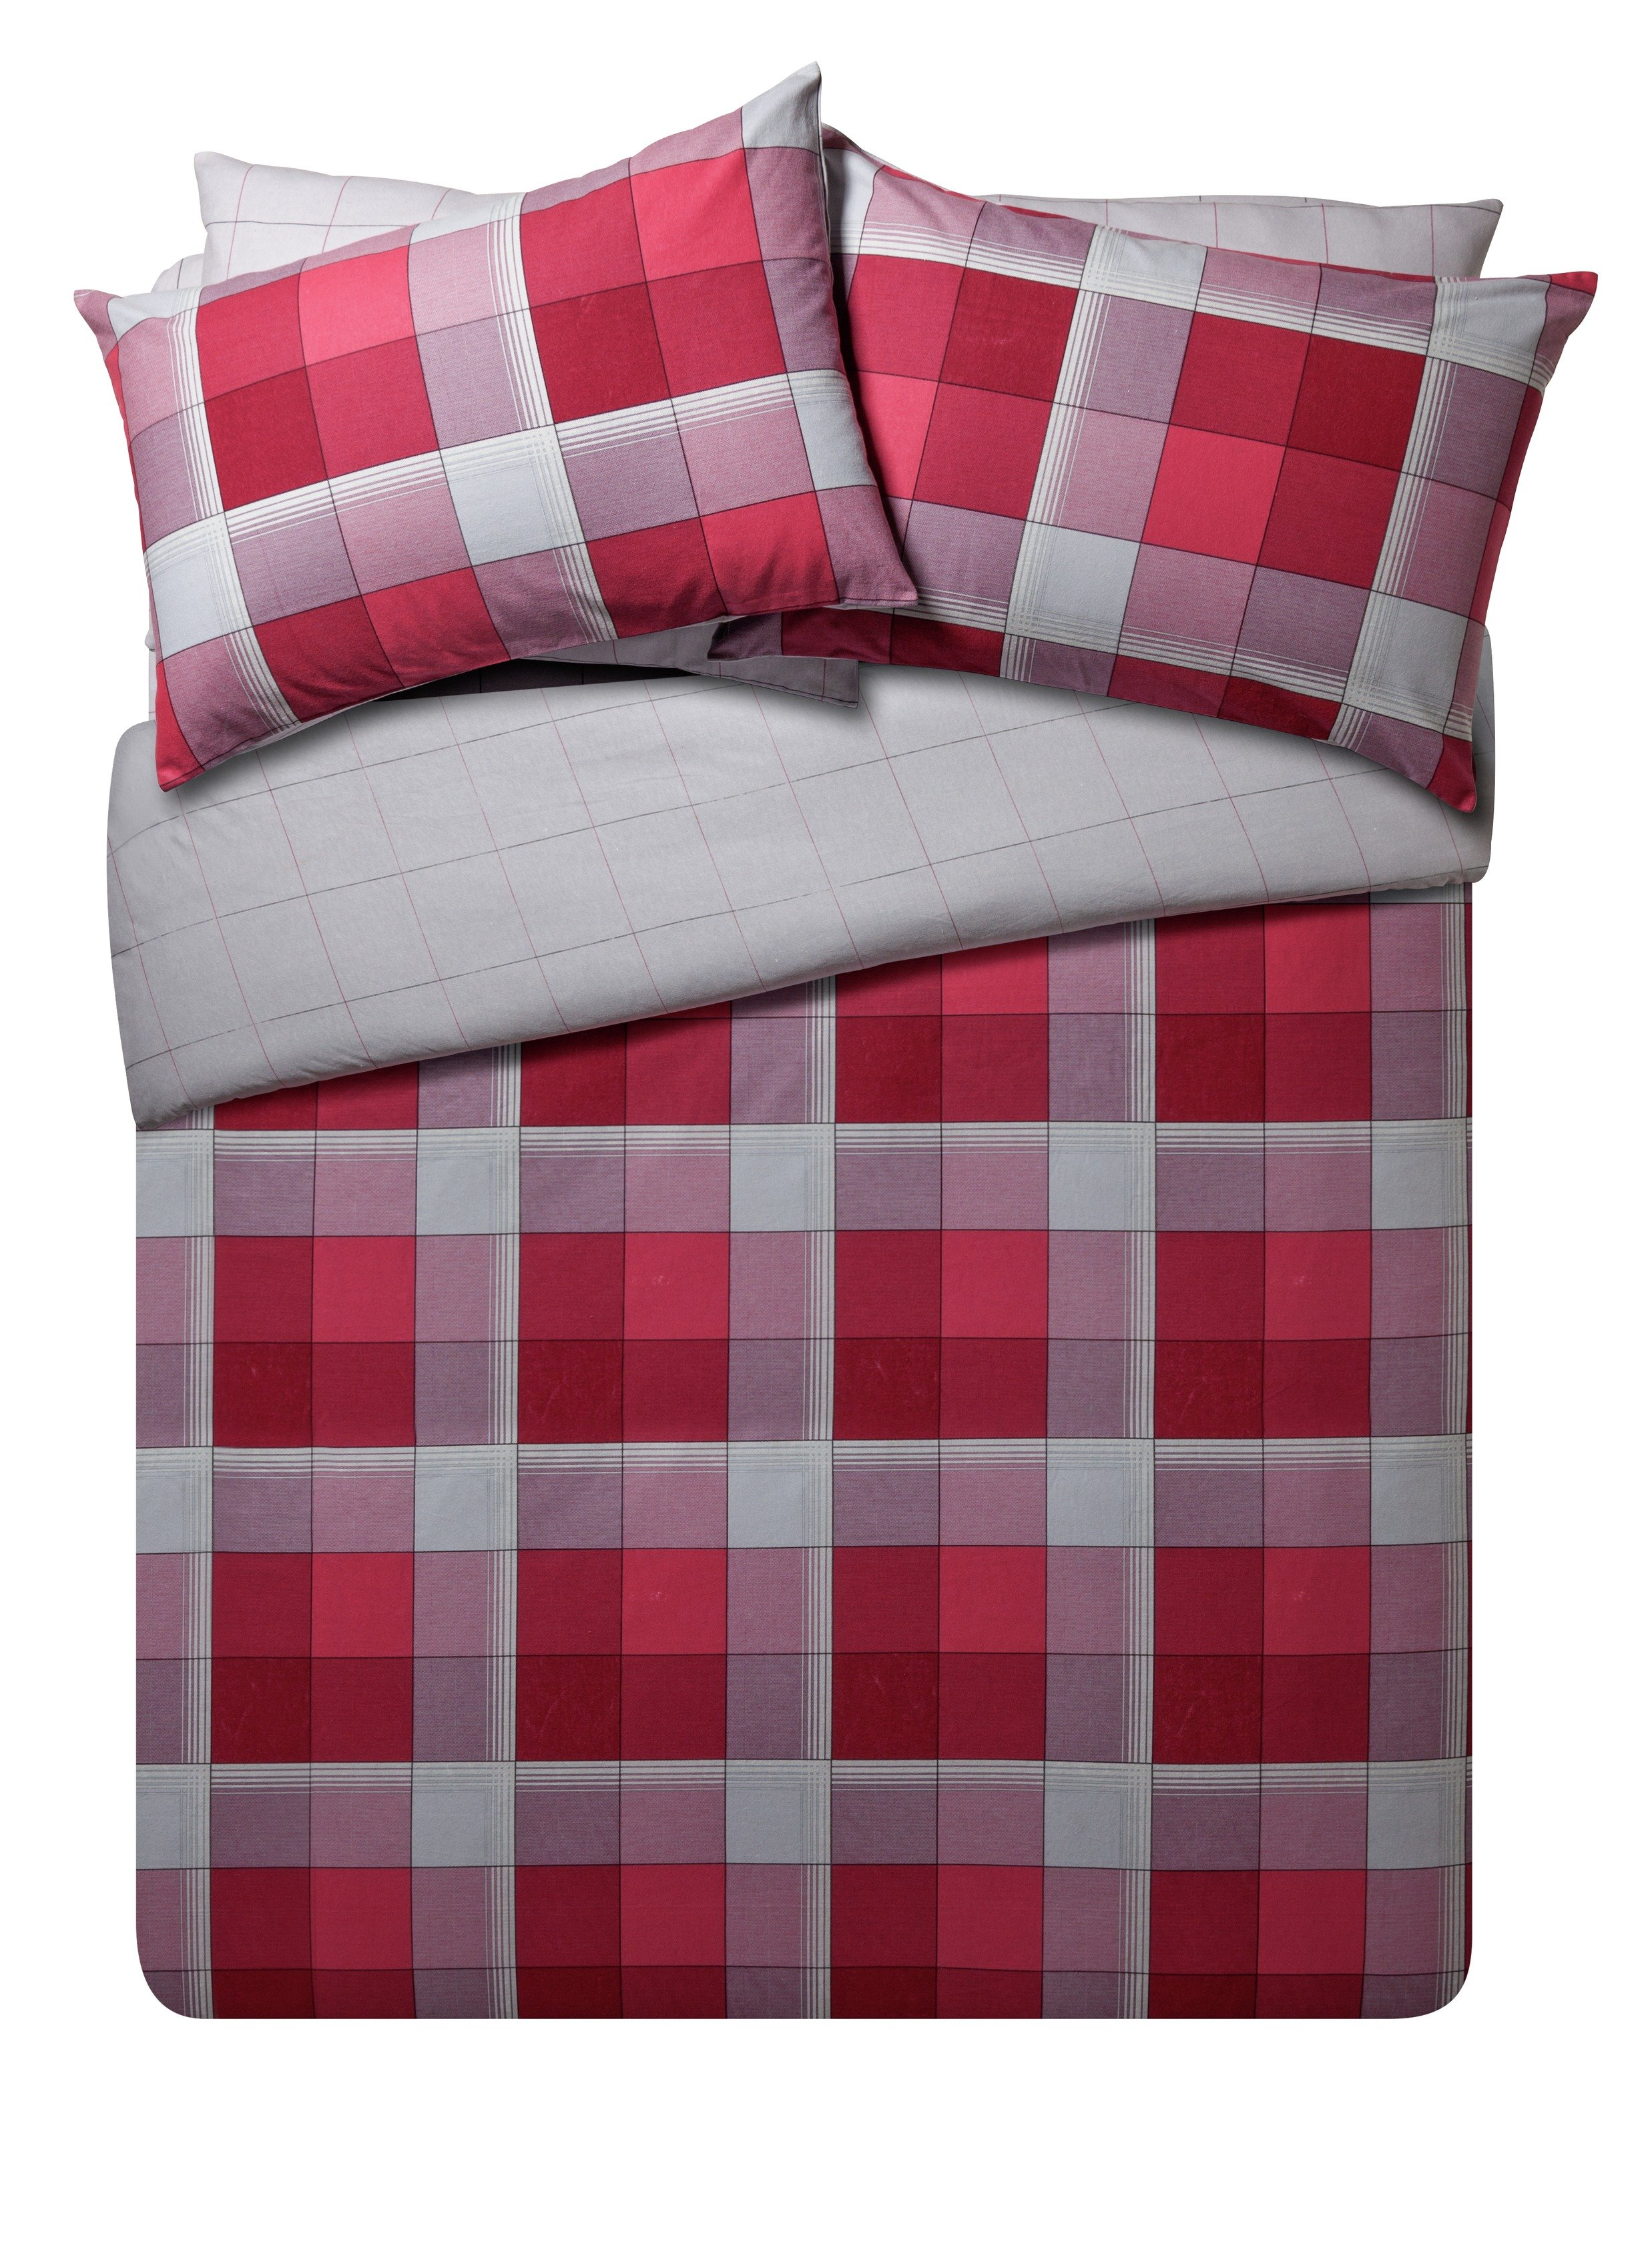 argos red duvet cover silk bed sheets argos offer. Black Bedroom Furniture Sets. Home Design Ideas